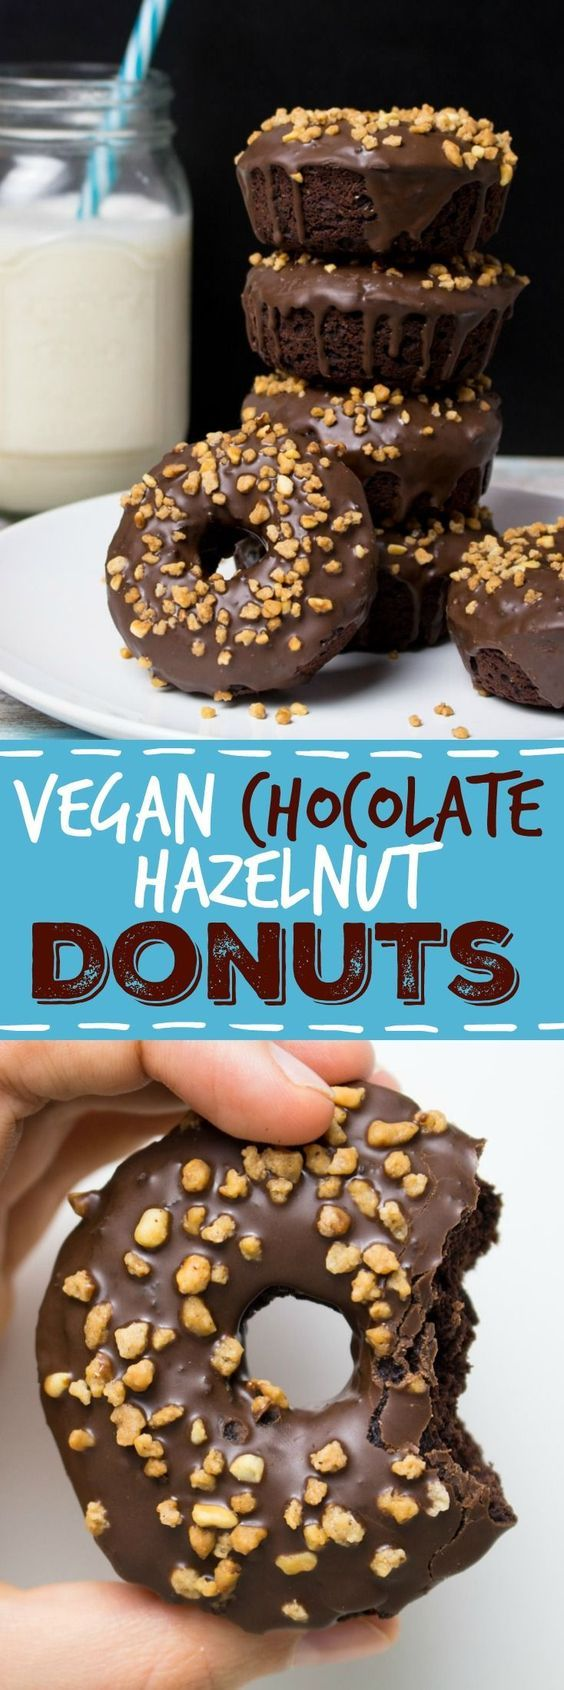 These vegan chocolate hazelnut donuts are not only super delicious and easy to make, but also healthier because they are baked, not fried! It might sound strange, but I used kidney beans for the batter, which made them so moist and chocolatey. #vegan #donuts #beans #doughnuts #dairyfree #chocolate #hazelnuts: